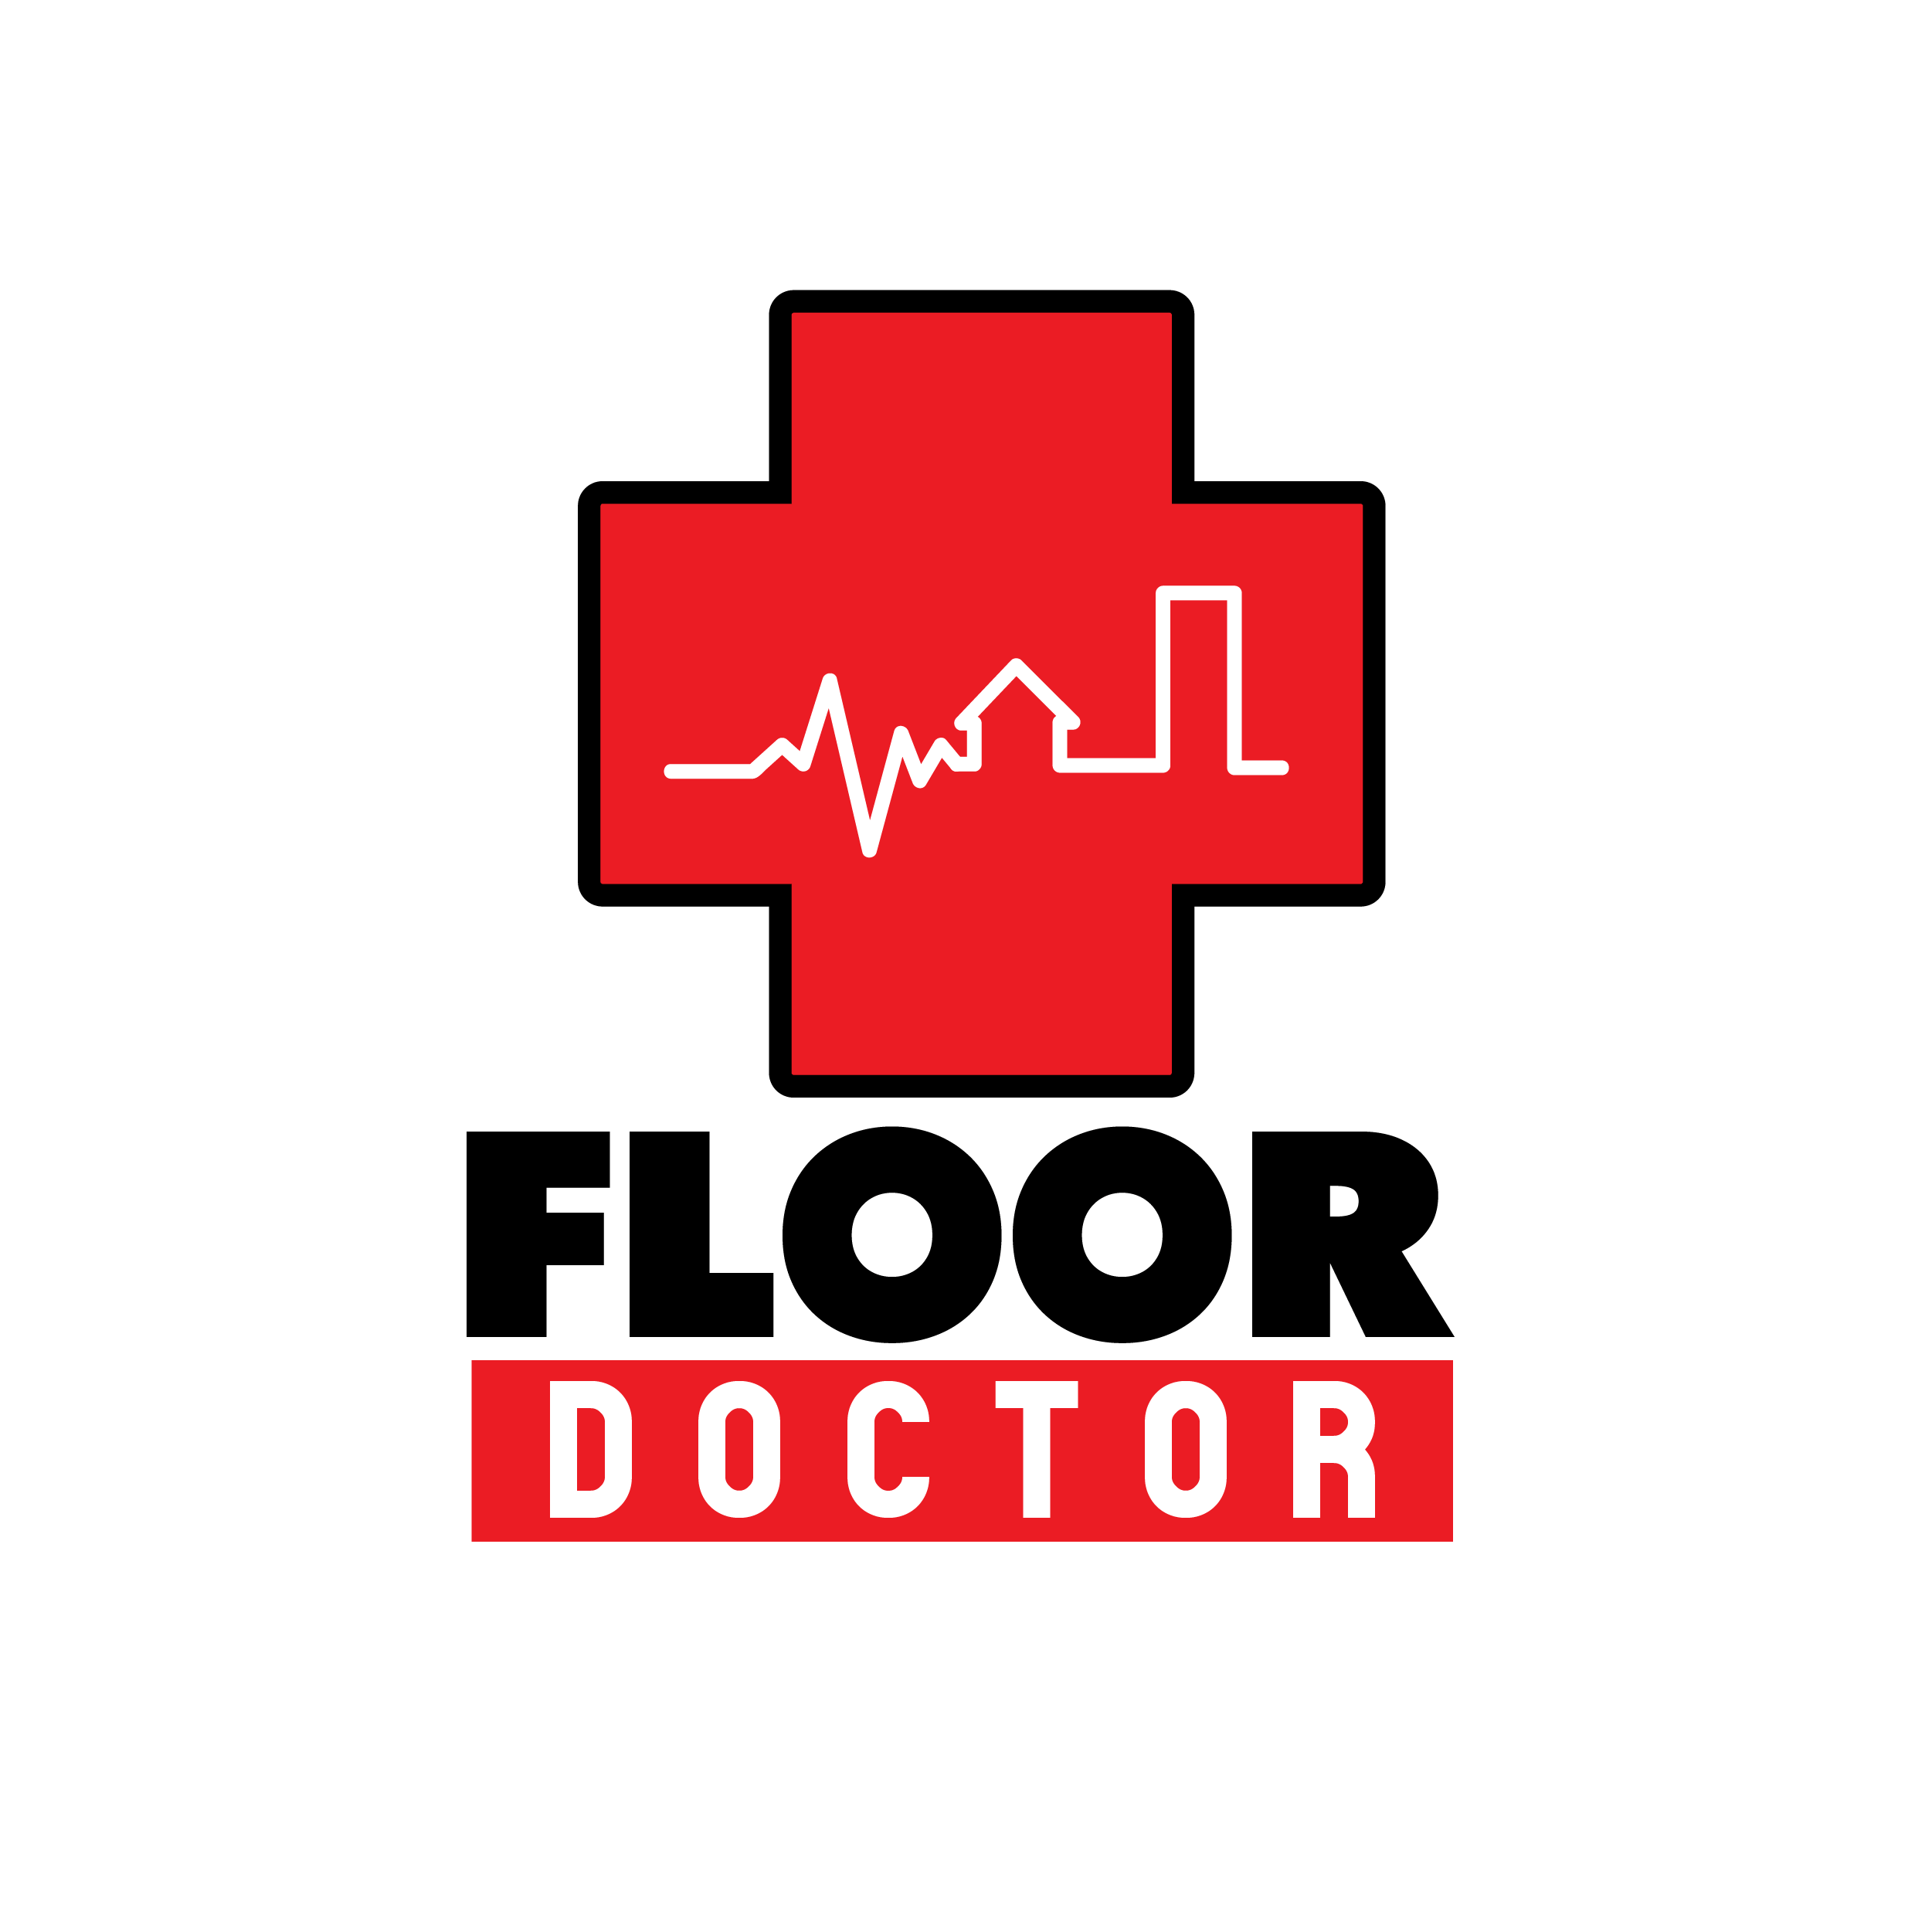 Floor Doctor Offers a Wide Range of Industrial, Commercial, and Residential Floor Coating Solutions in Edmonton, AB